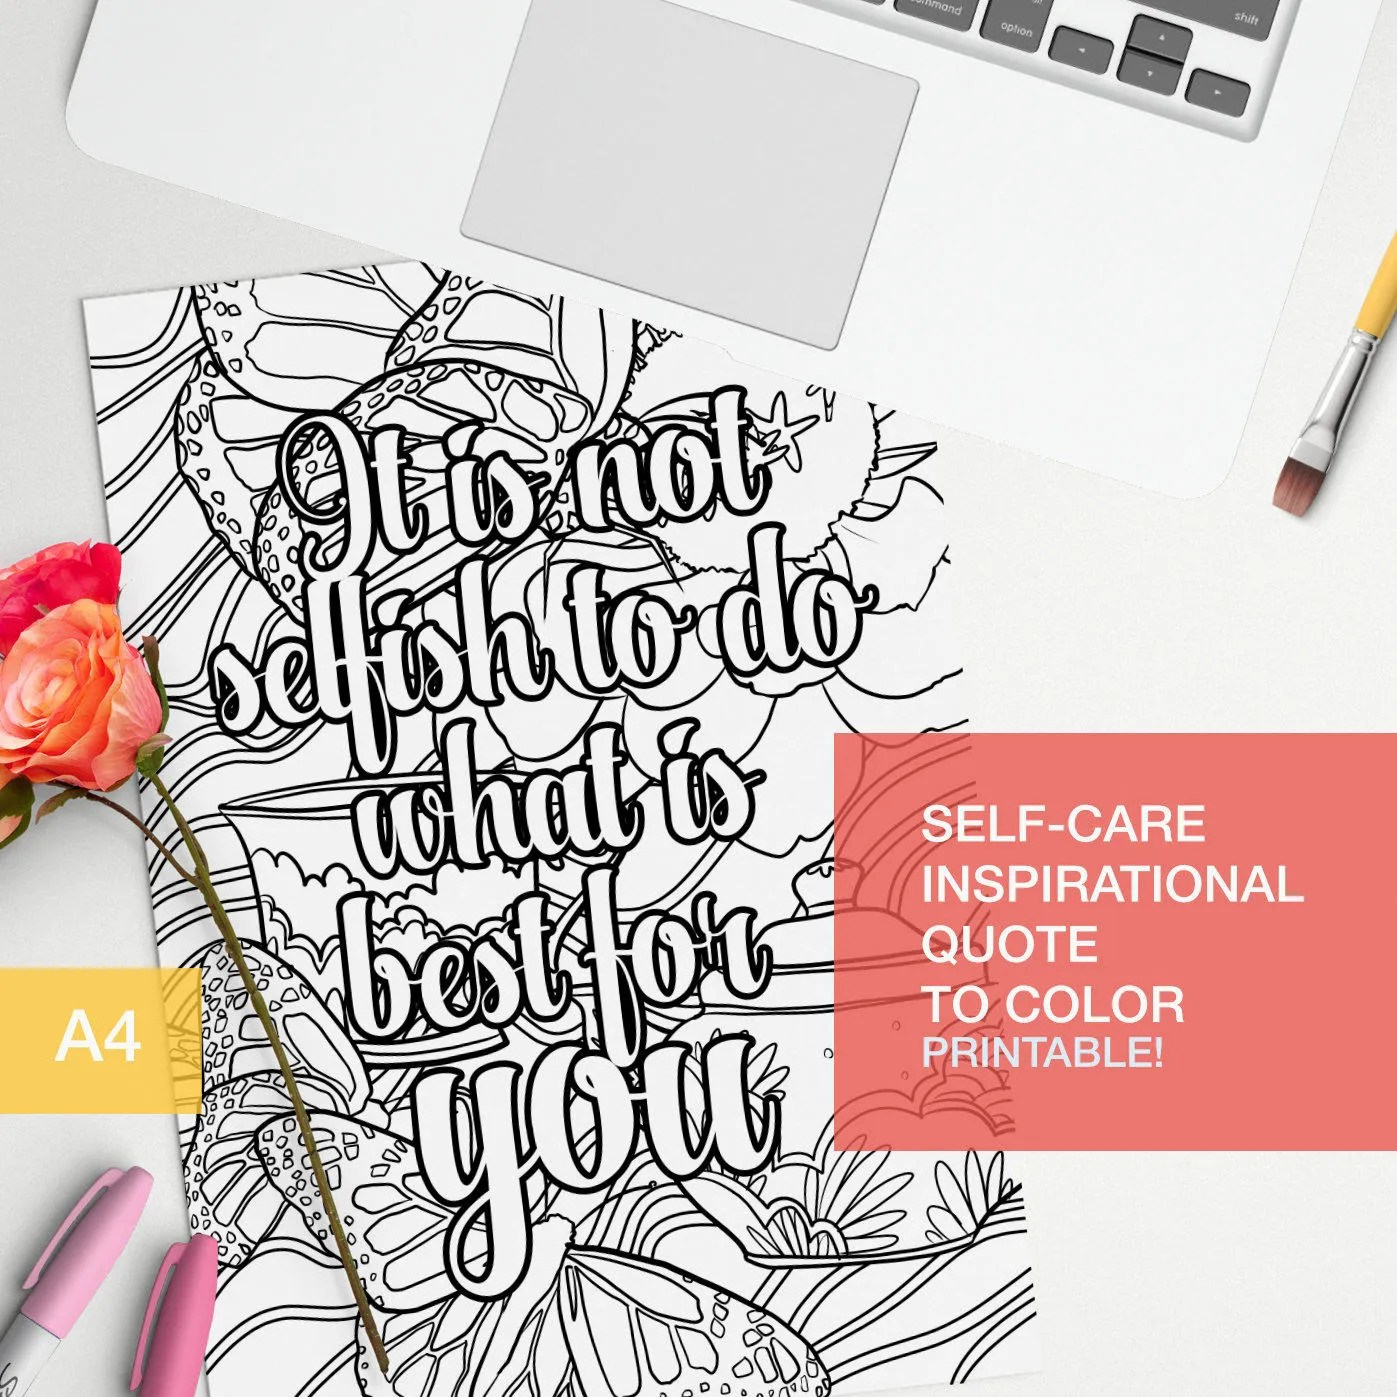 Self Esteem Coloring Quotes Printable It Is Not Selfish To